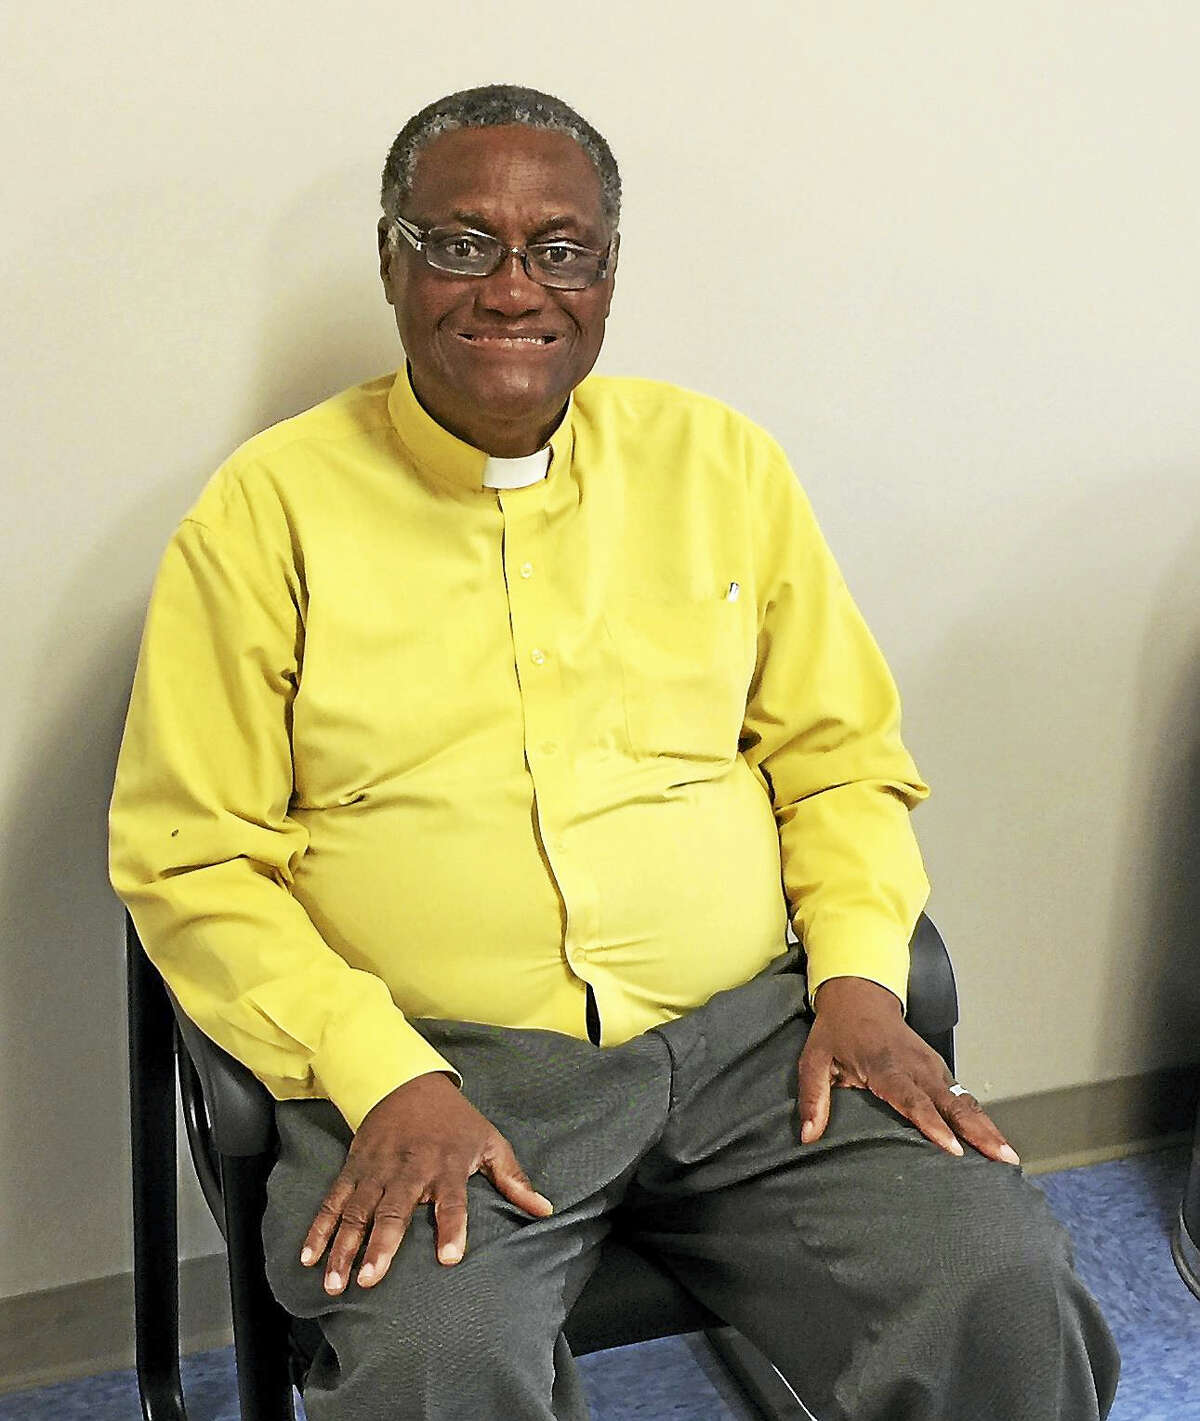 The Rev. Peter Aduba is organizing a campaign to run for mayor of Torrington.